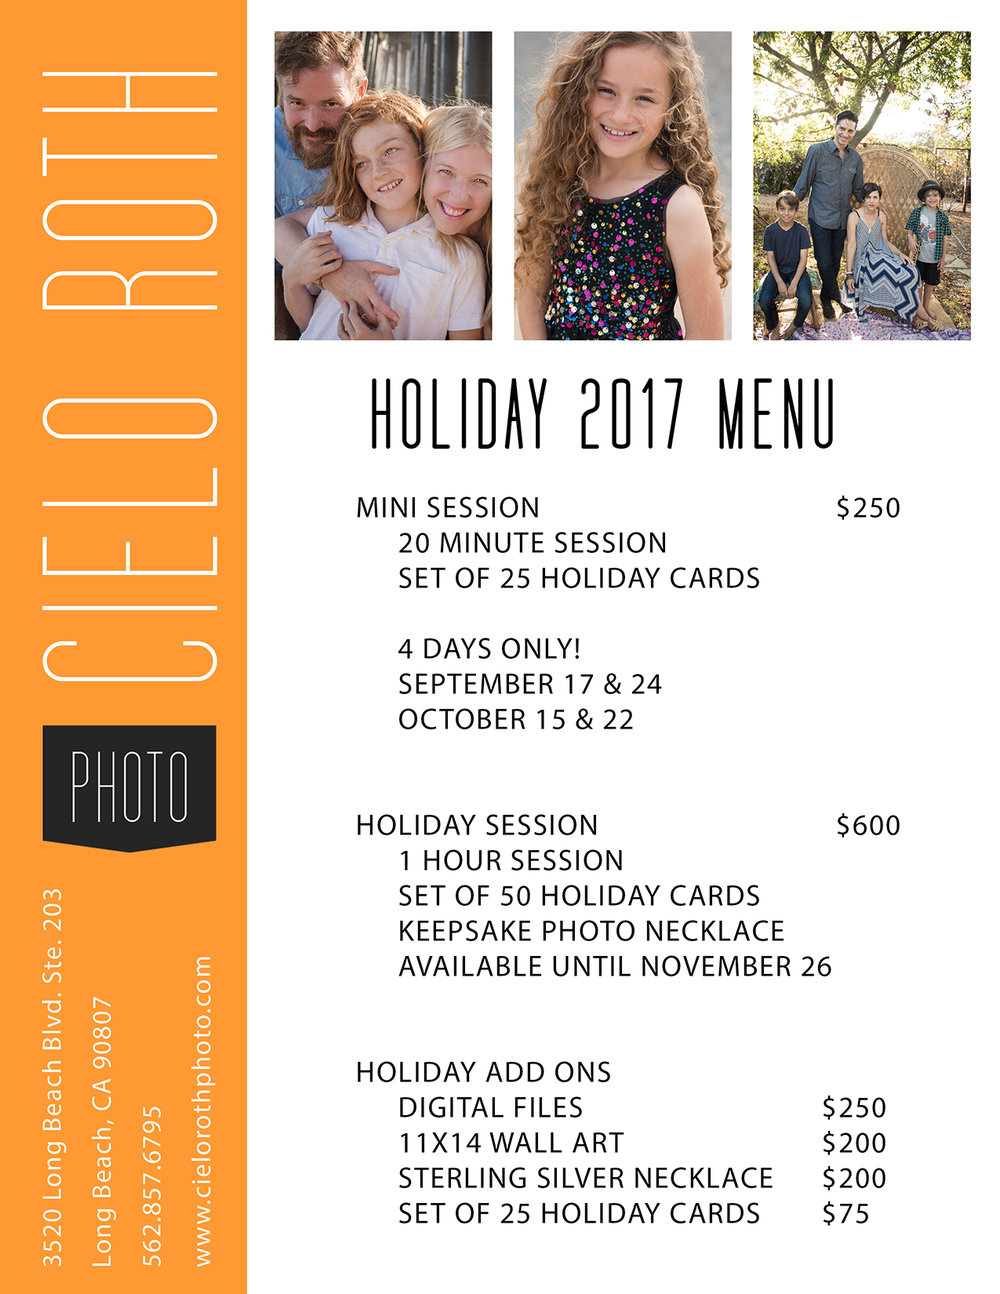 holiday2017menu_cielorothphoto